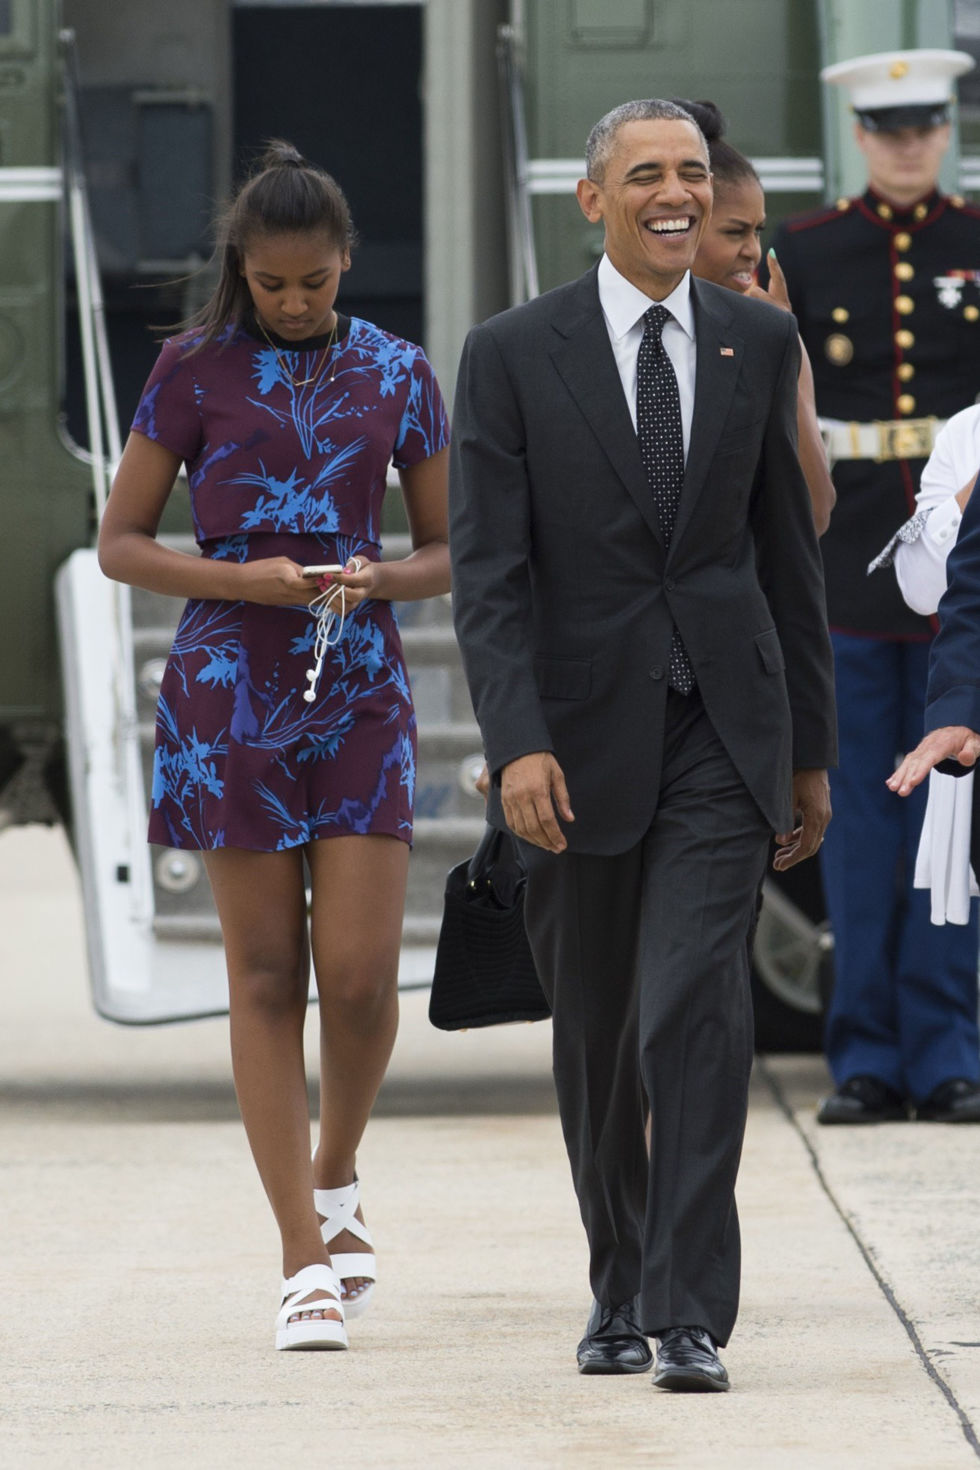 Michelle Obamas Stunning Outfits as Told by Designers Who Dressed Her